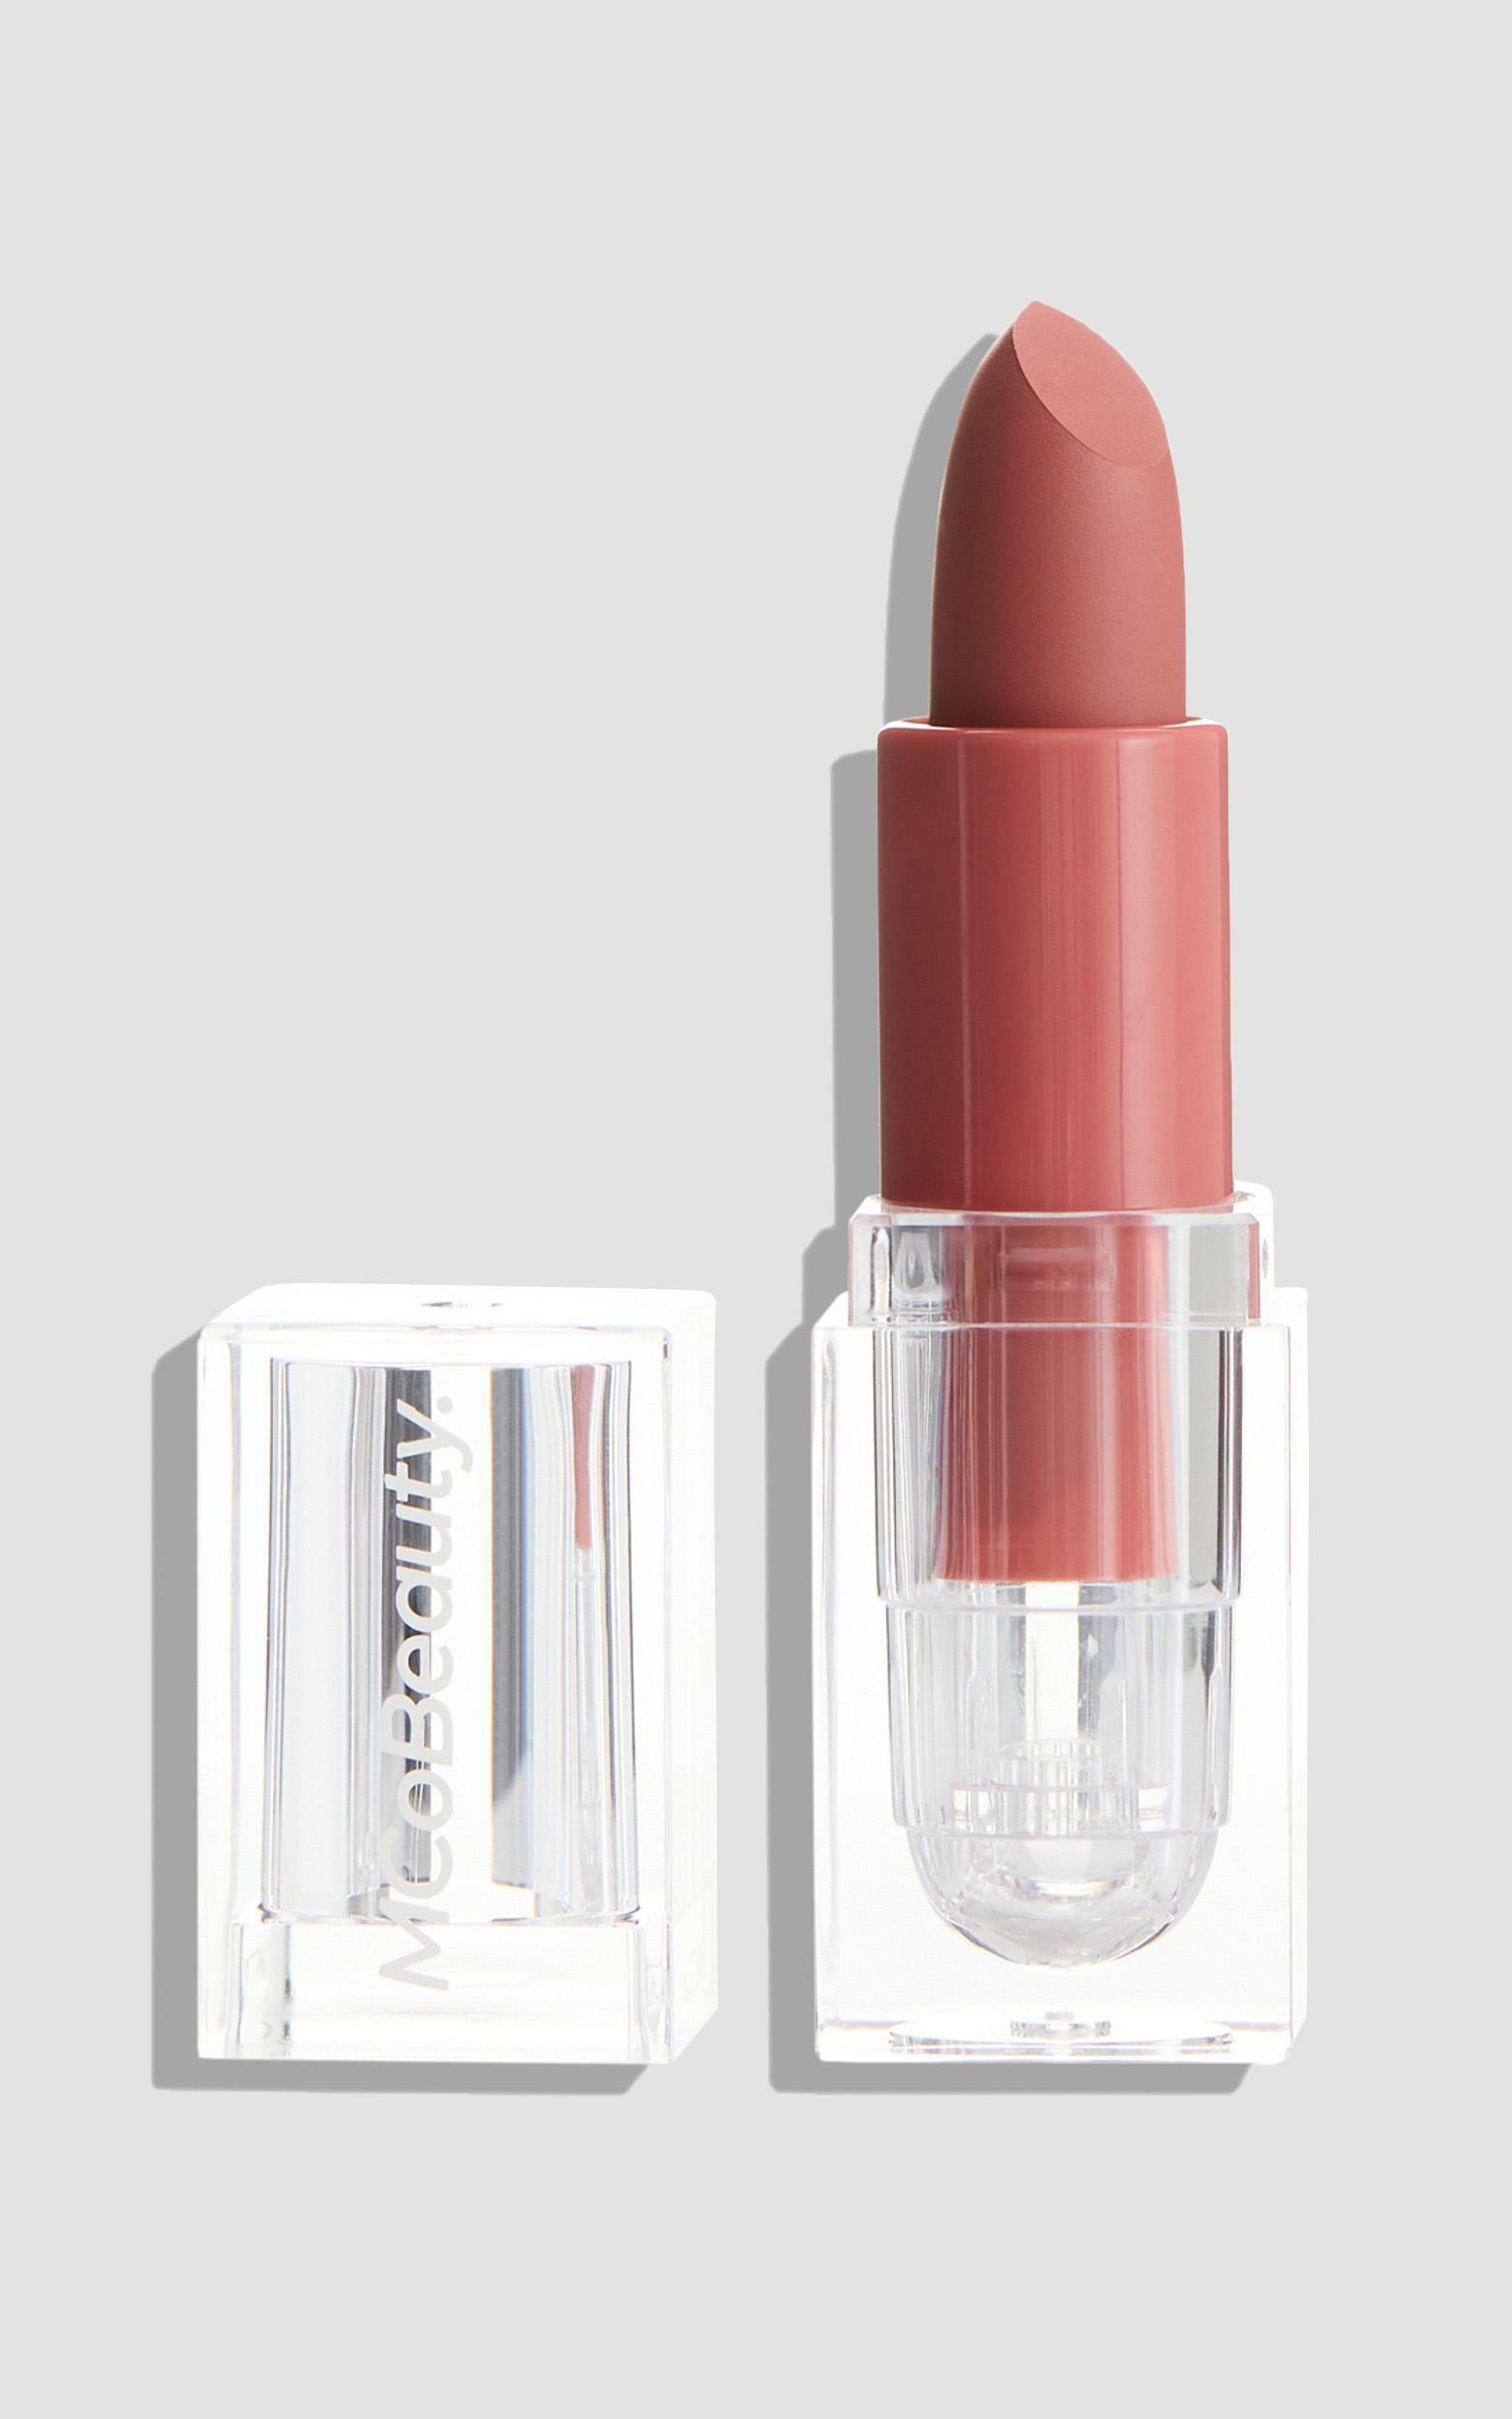 MCoBeauty - Creme Matte Lipstick in Kitty, Pink, hi-res image number null